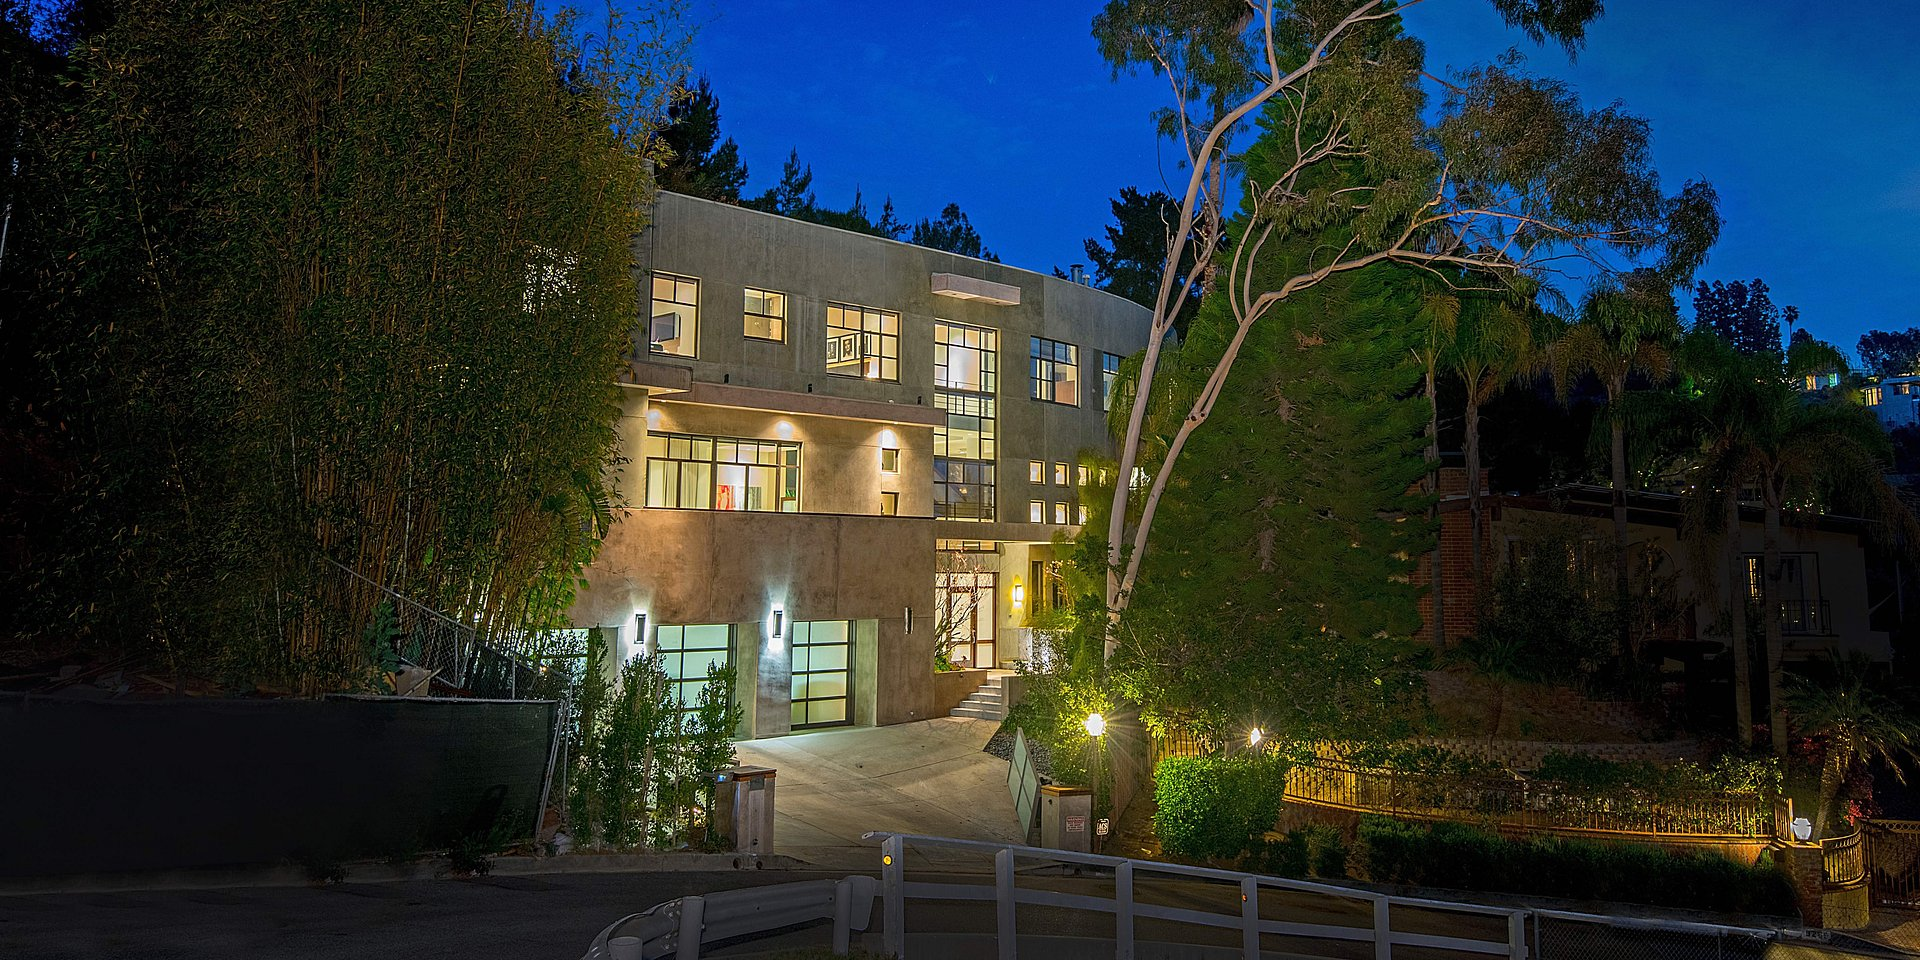 Coldwell Banker Residential Brokerage Lists Los Angeles Property for $5 Million